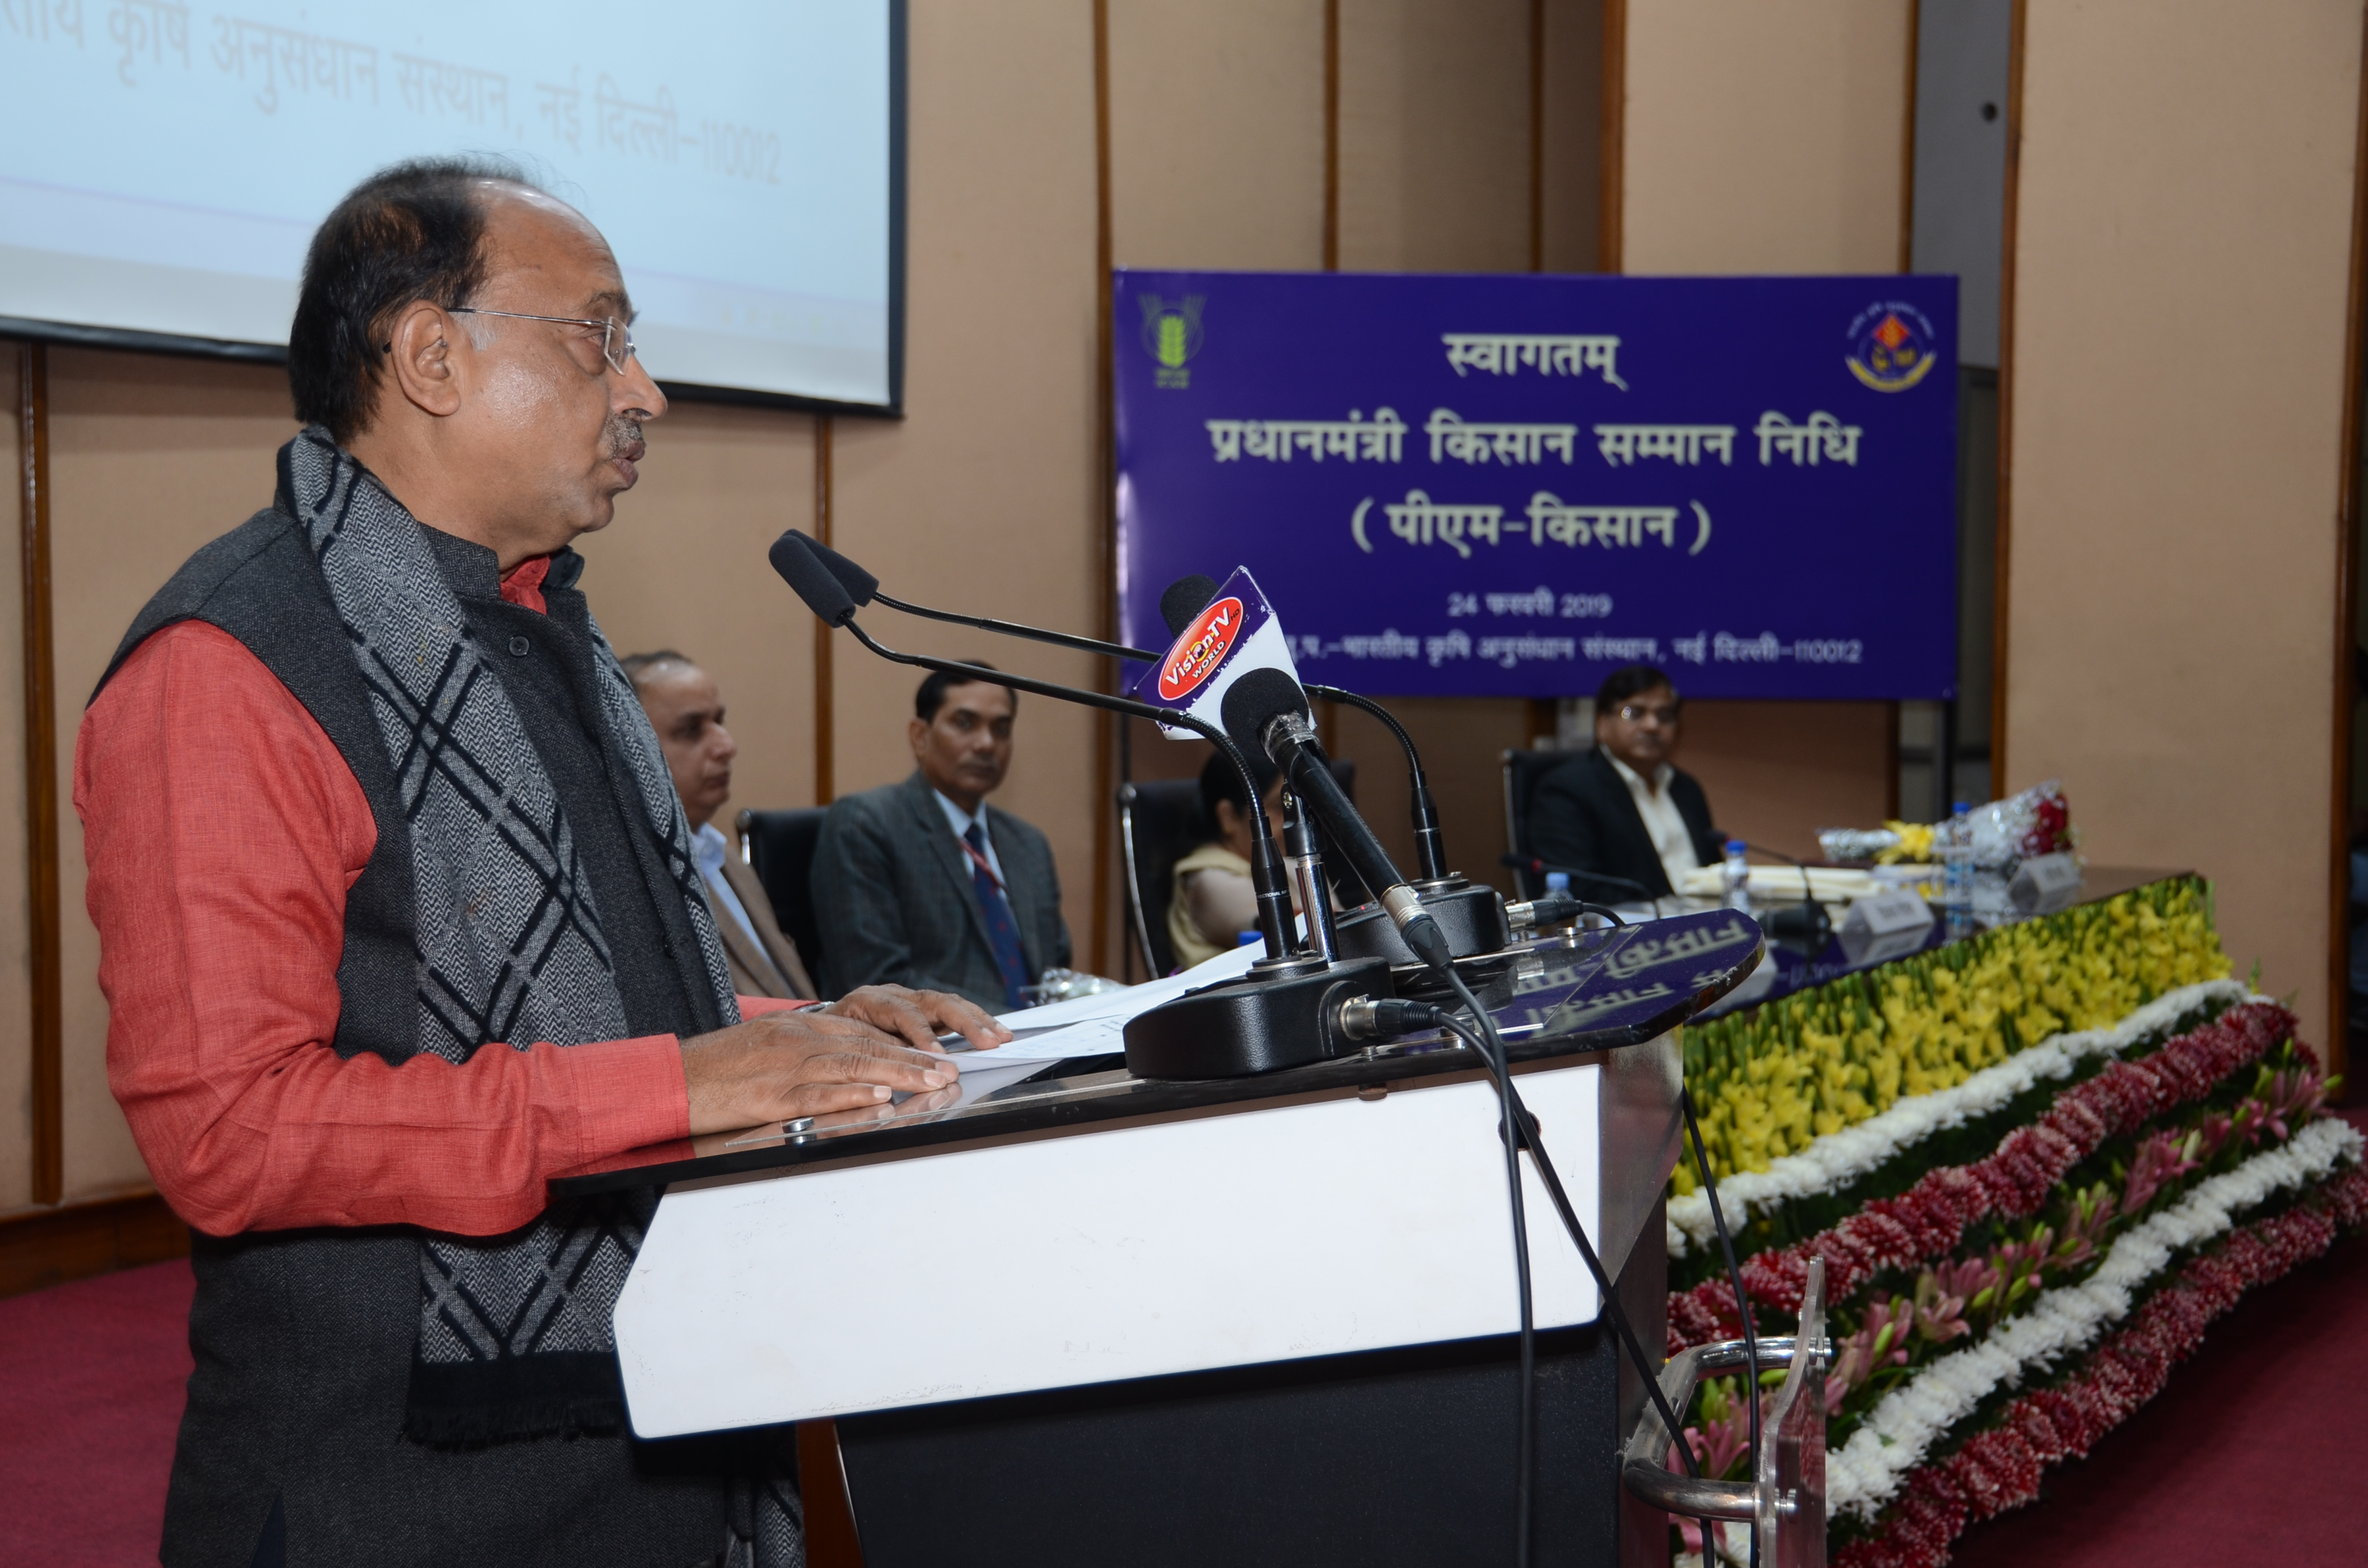 Shri Vijay Goel, Hon'ble Minister of State for Parliamentary Affairs and Statistics & Programme Implementation addressing at Live telecast of inauguration of PM-KISAN at Dr. B. P. Pal Auditorium on 24.02.2019